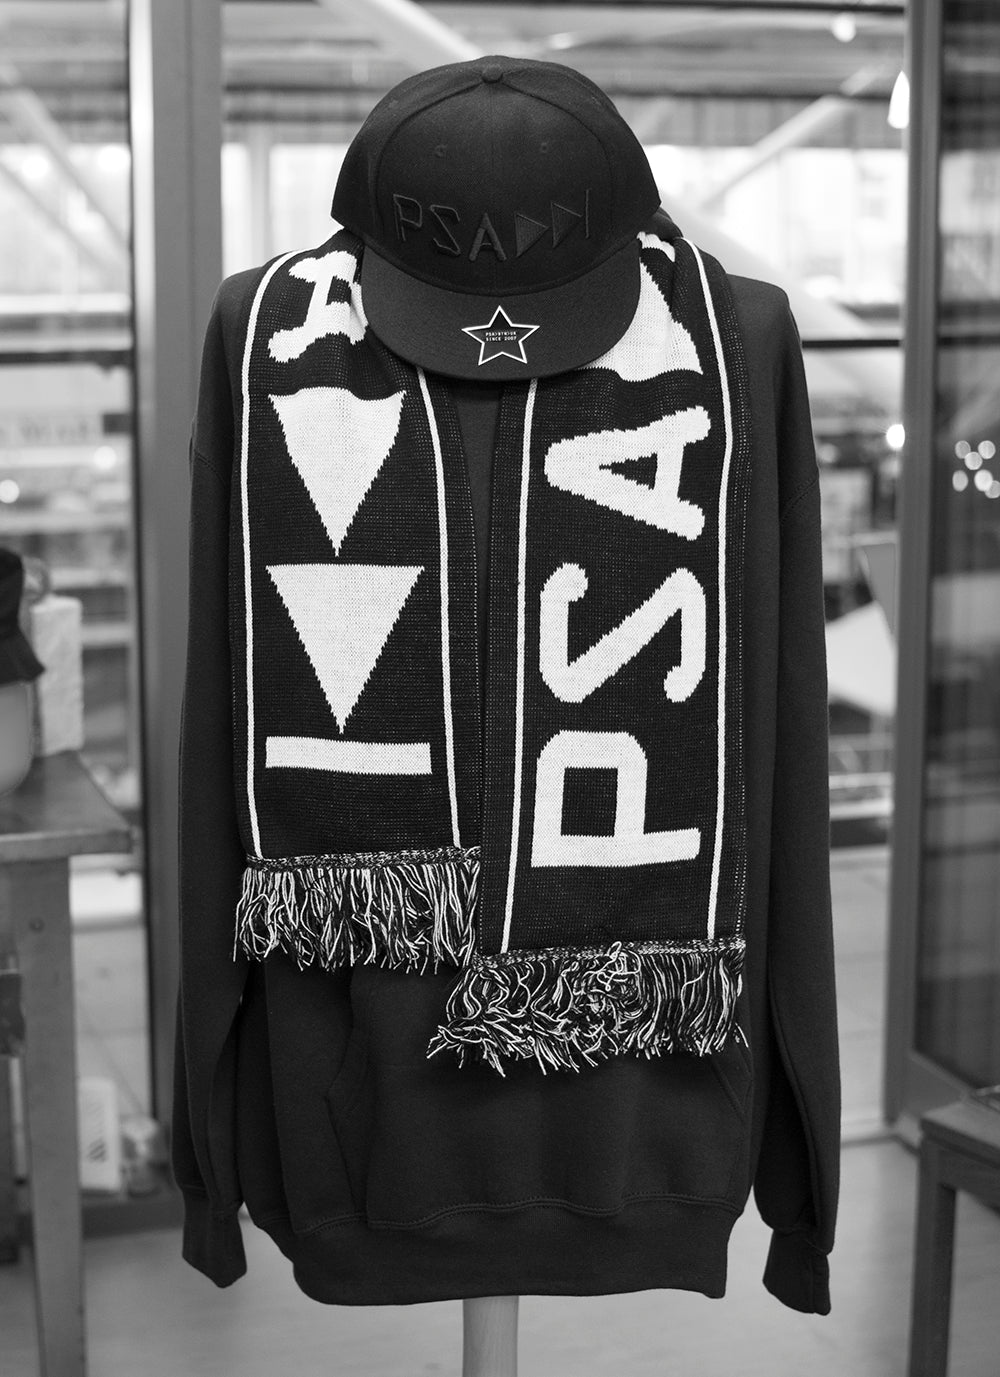 Matchday Scarf Pear Shaped PSA Brighton Clothing